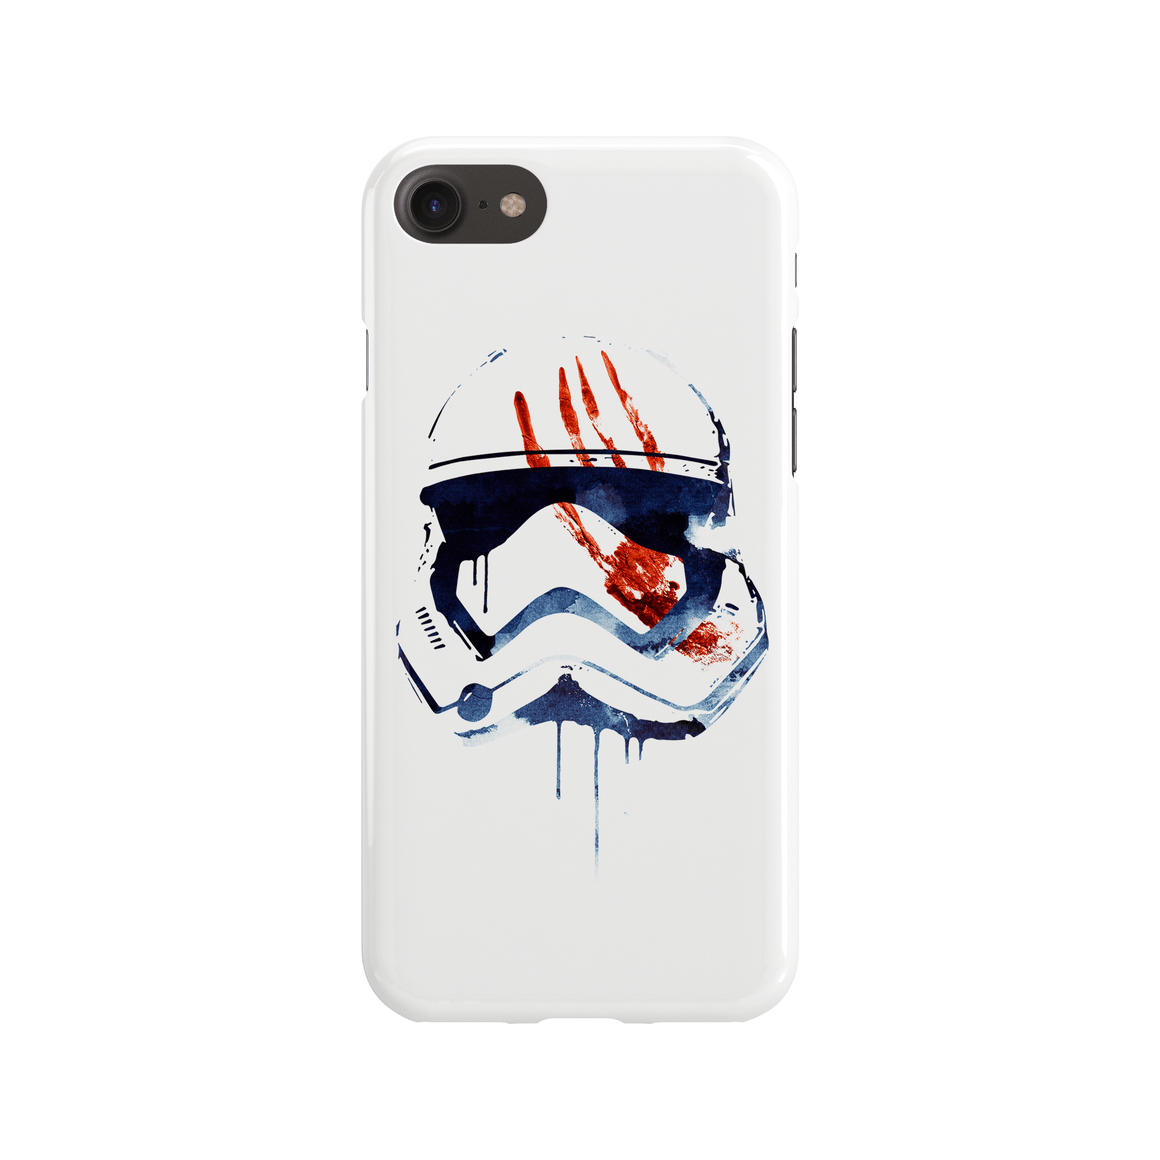 Bloody Memories Phone Case - Premium Artwear Curartee